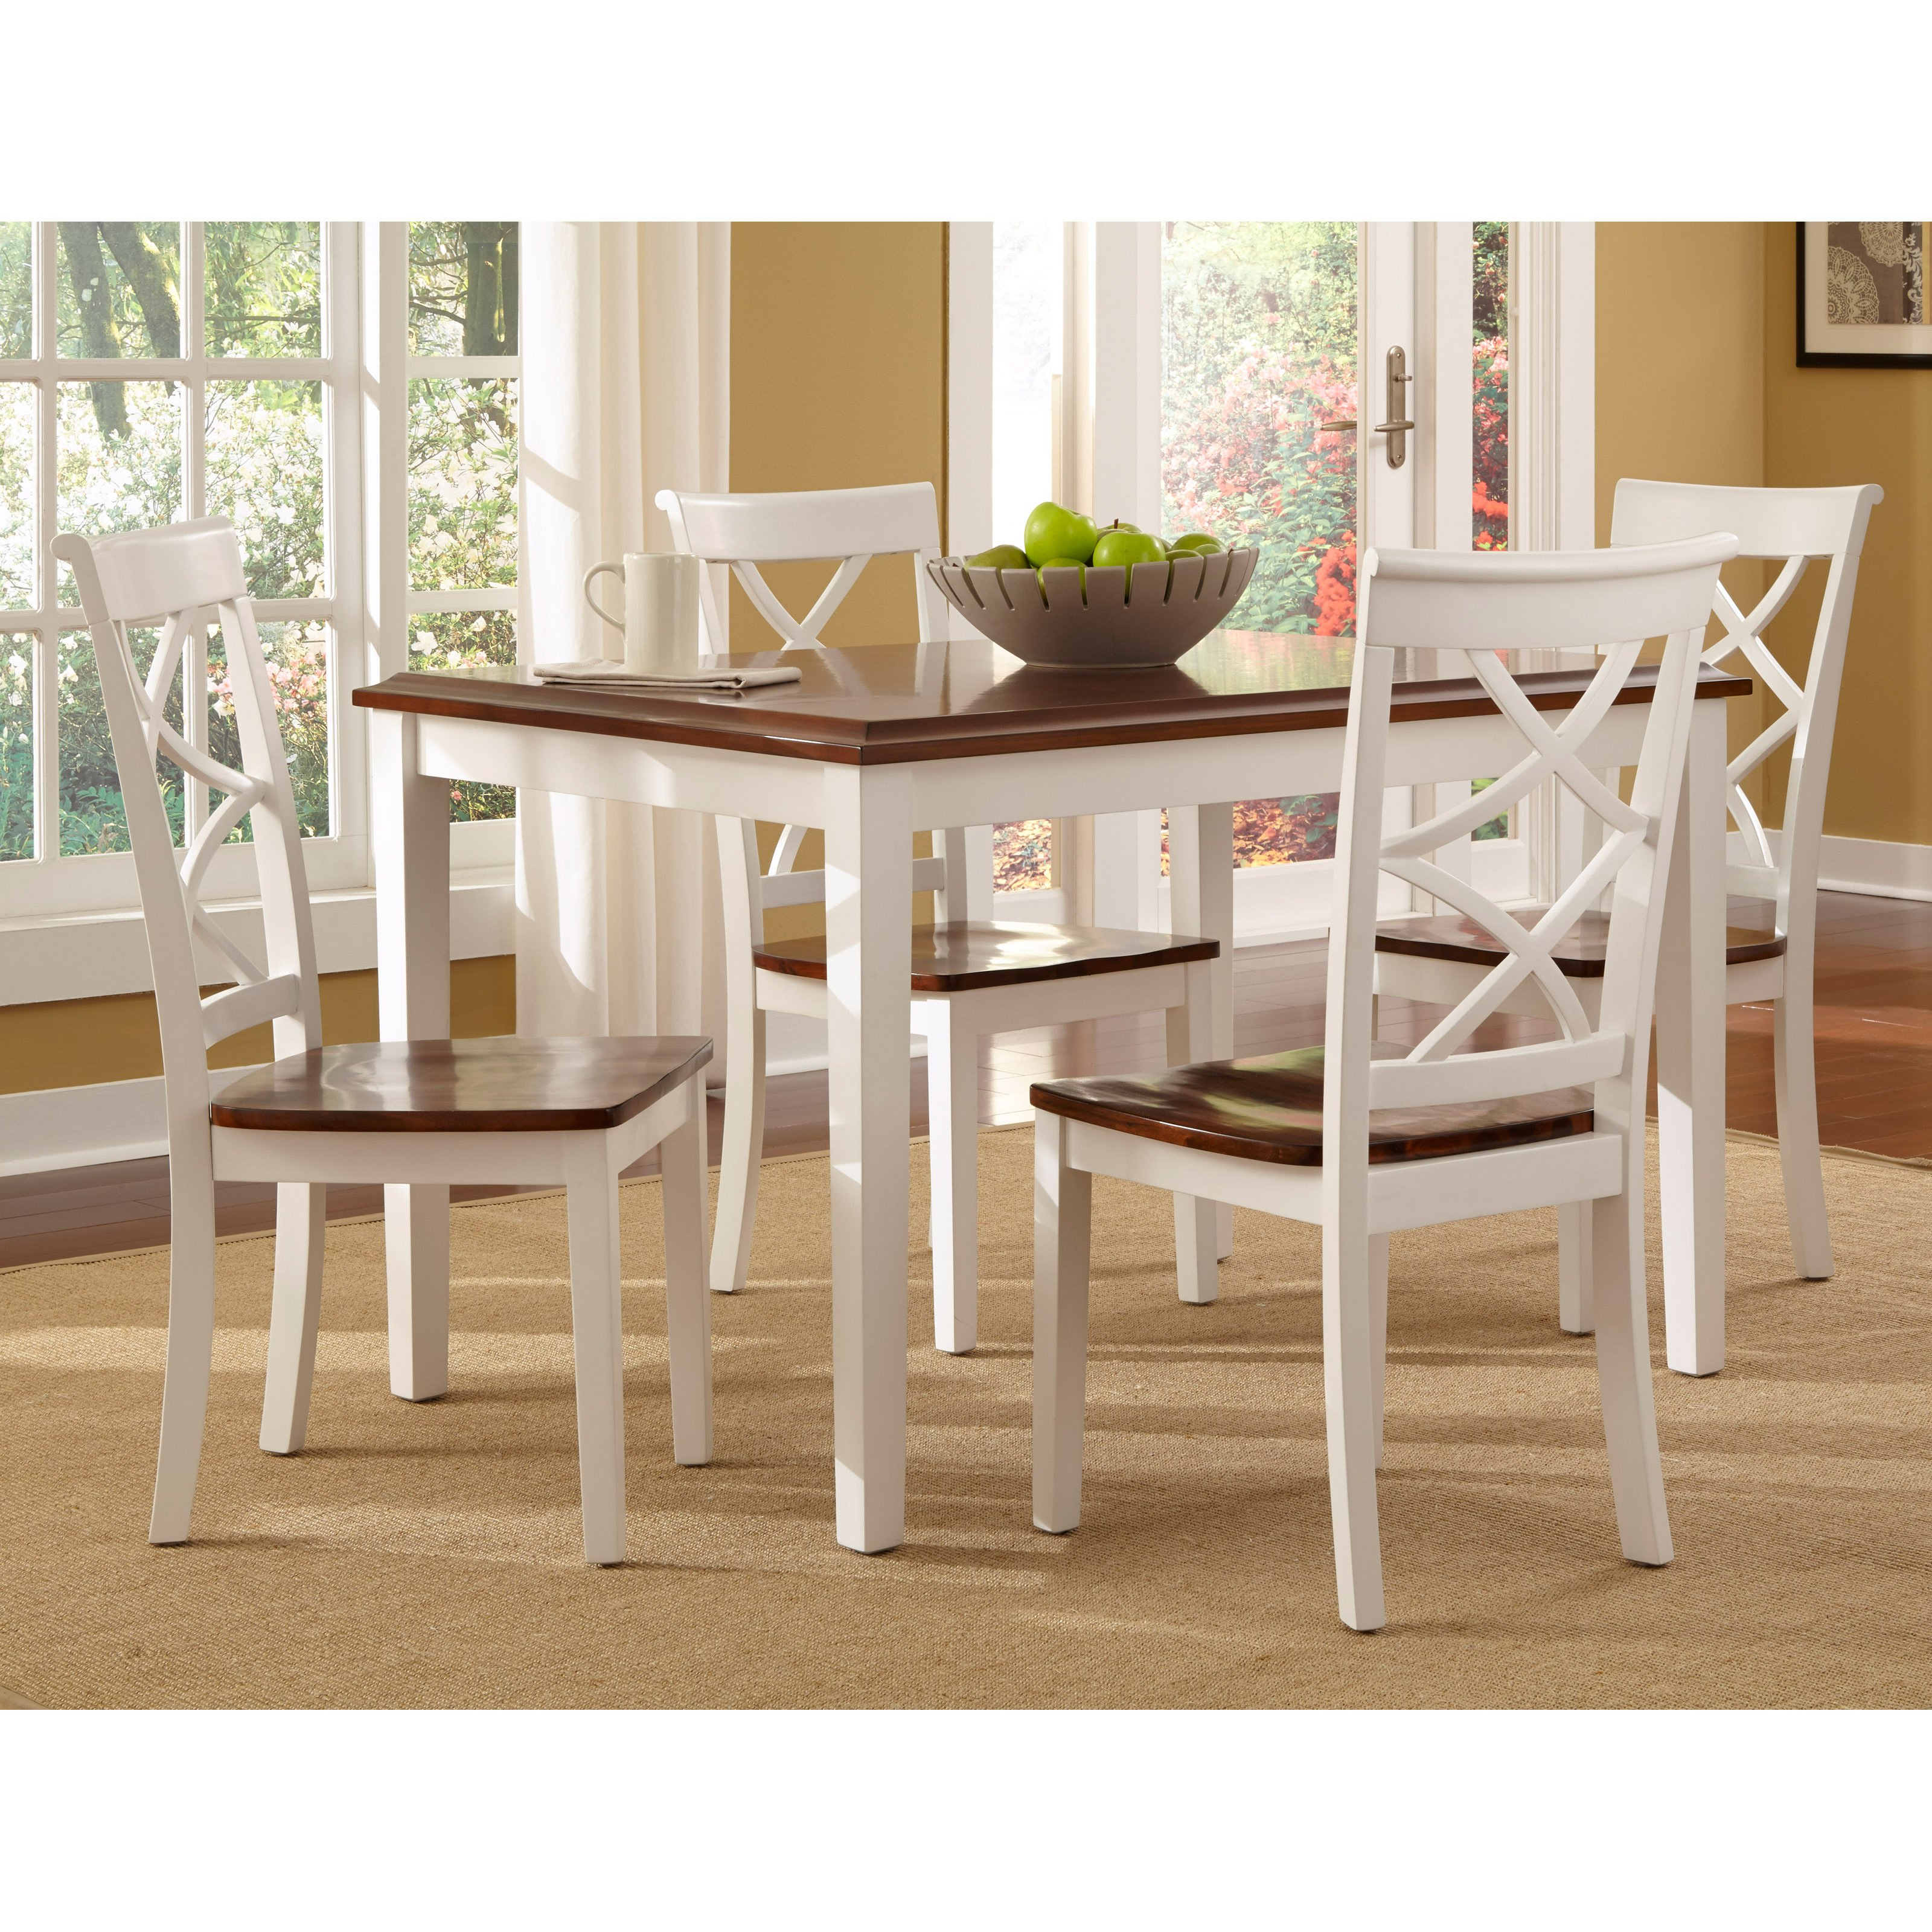 Metropolitan 3 Piece Dining Set, Multiple Finishes – Walmart With Widely Used Rossiter 3 Piece Dining Sets (View 9 of 25)